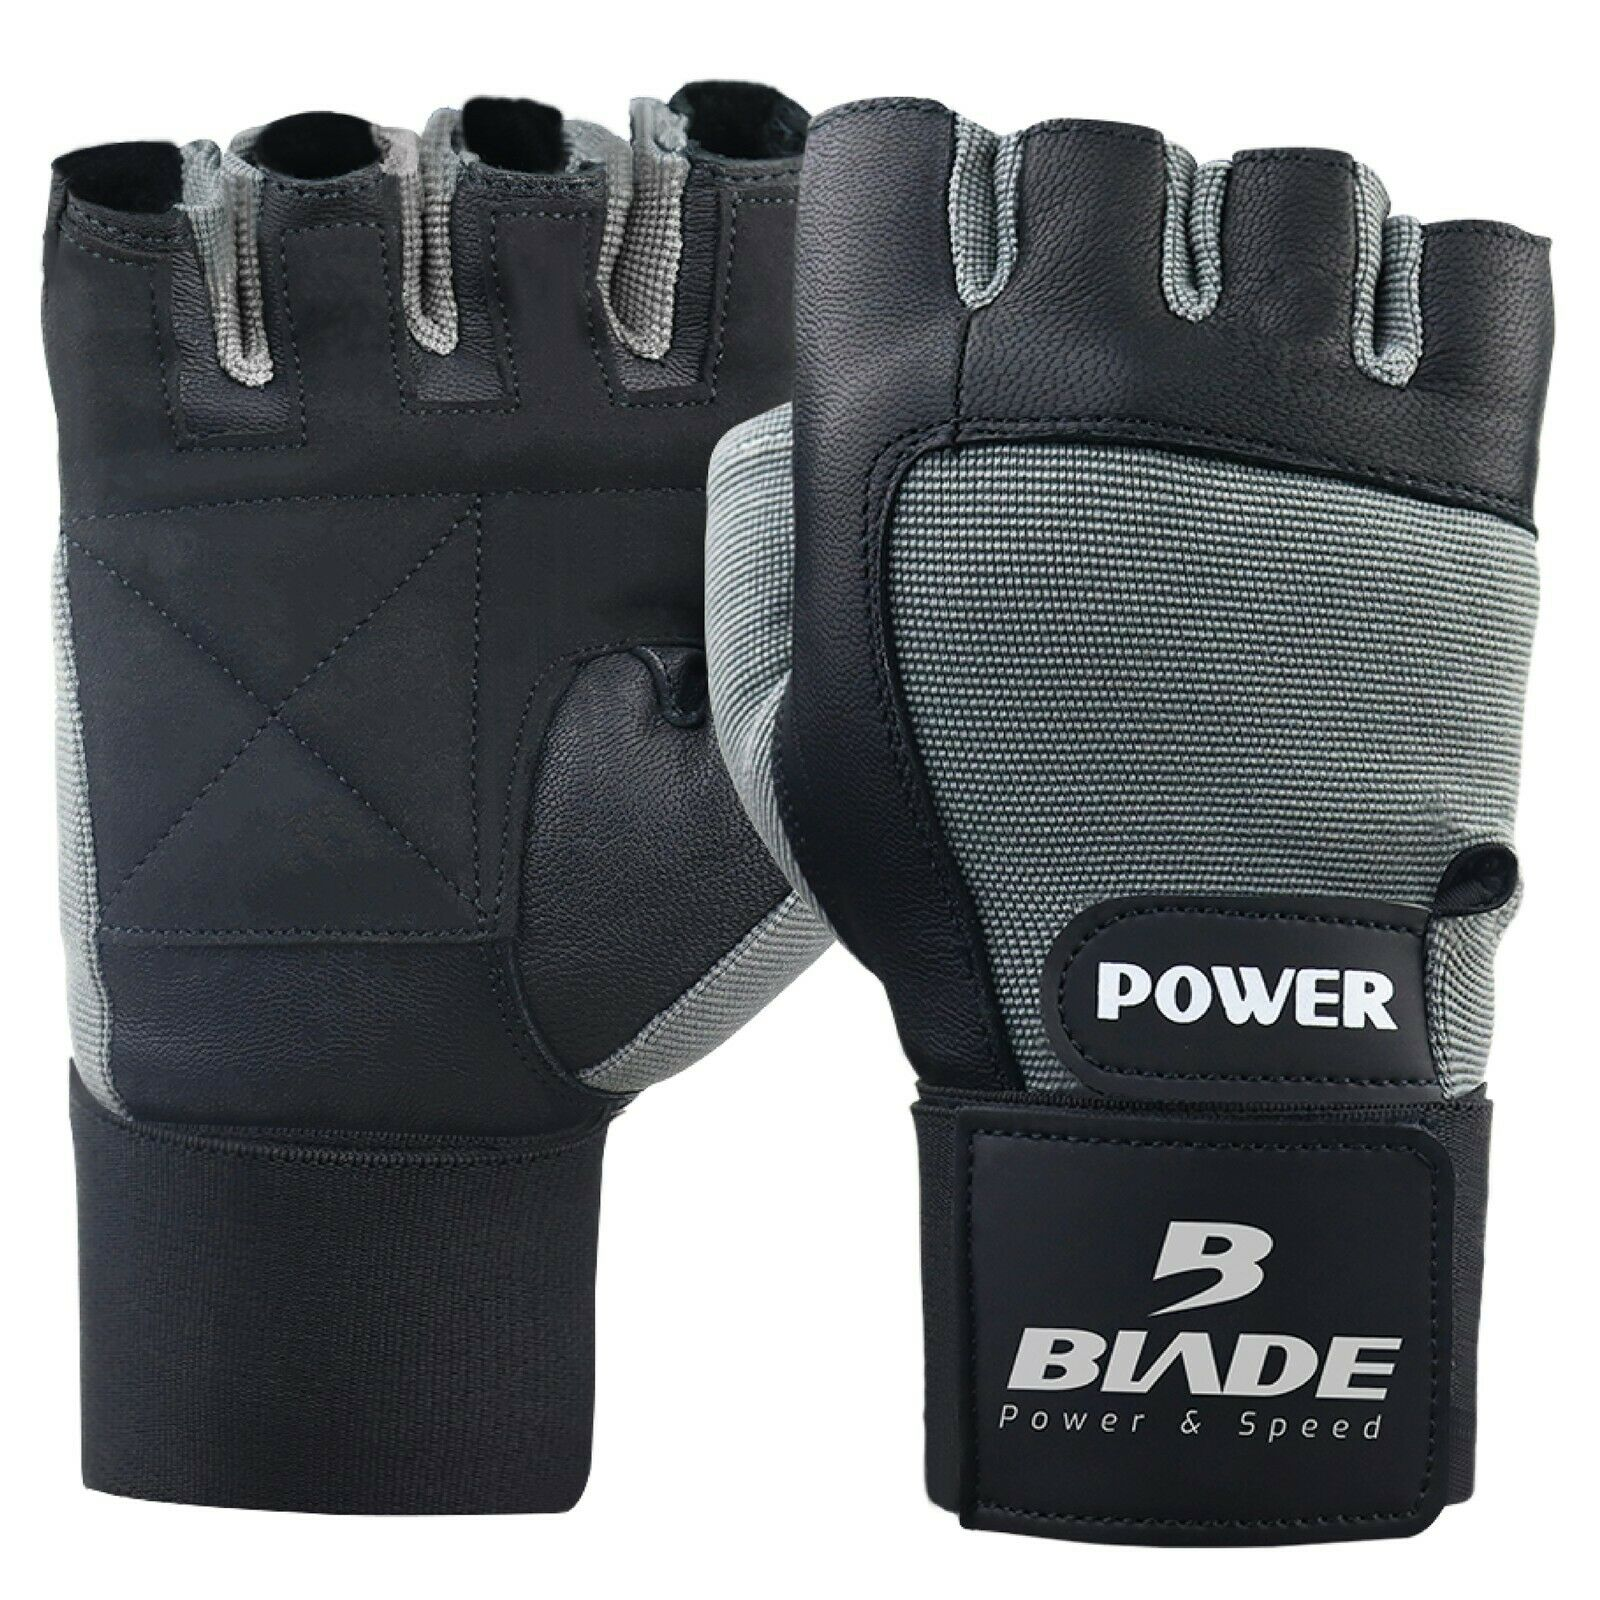 Weight Lifting Gloves Workout Fitness Gym Training Wristband Strap Black/&Grey